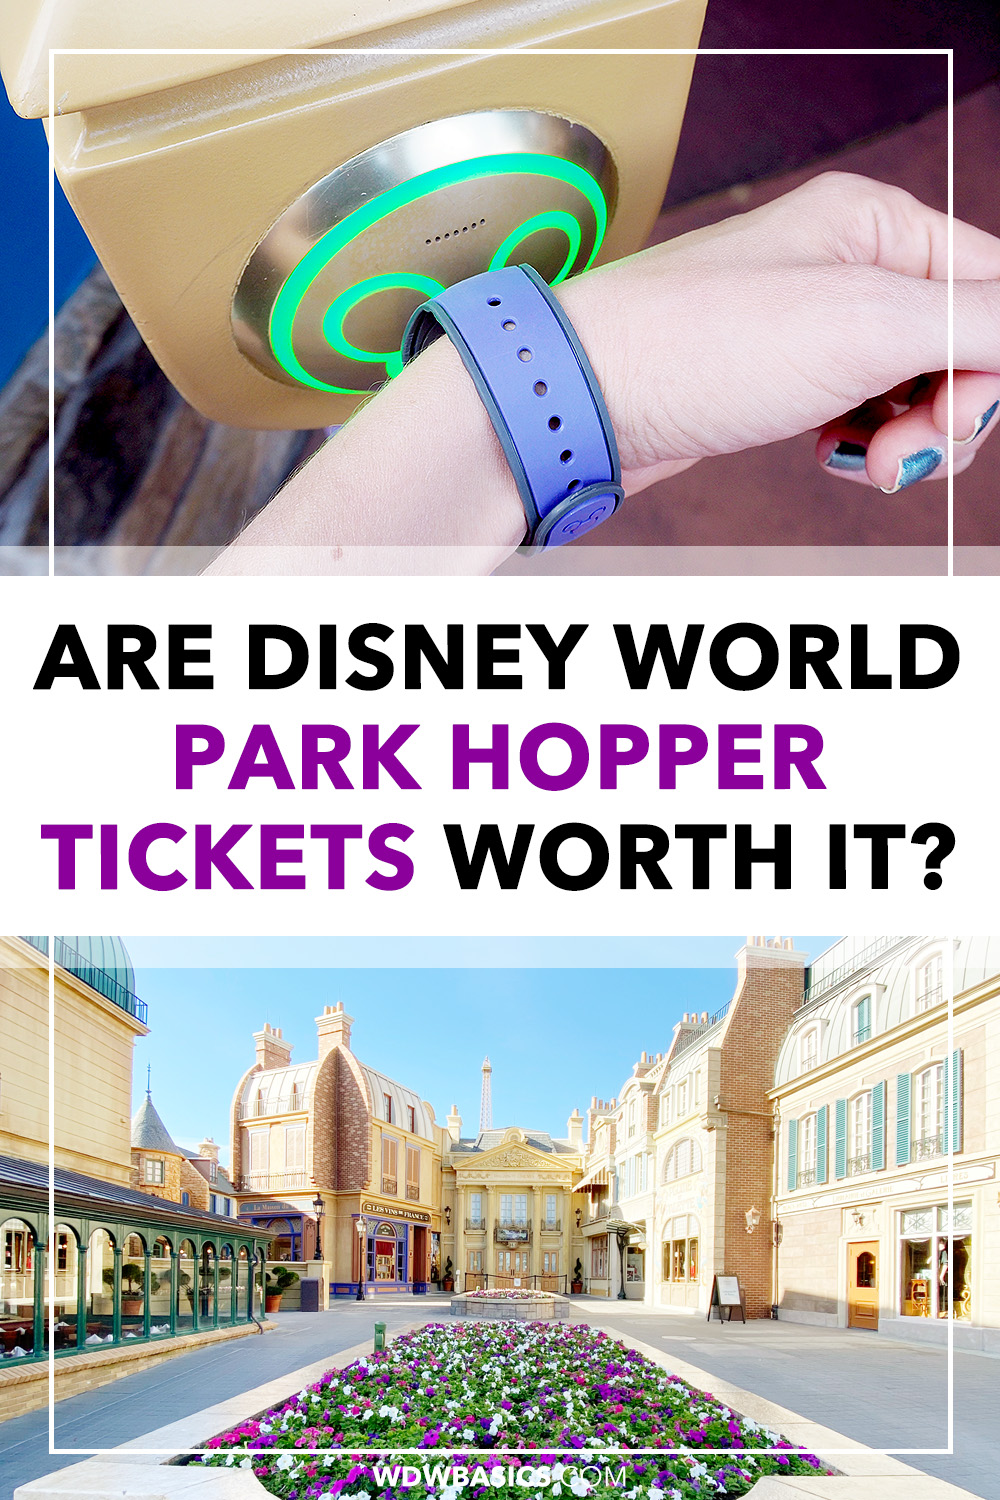 Are Disney World park hopper tickets worth it?